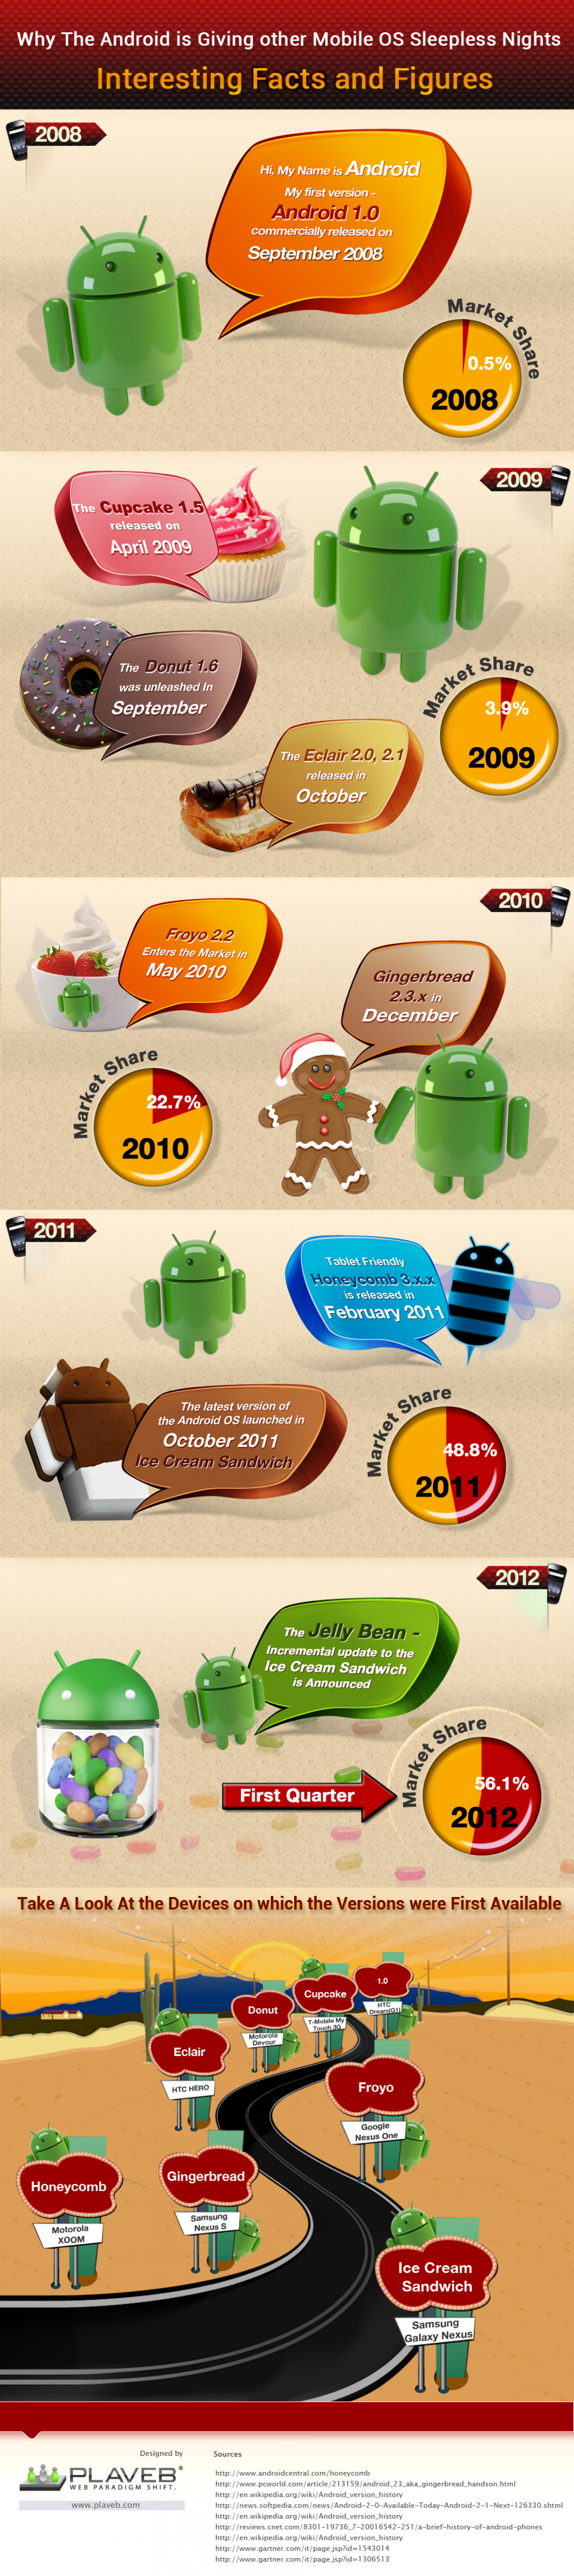 Why The Android is Giving Other Mobile OS Sleepless Nights INFOGRAPHIC Infographic